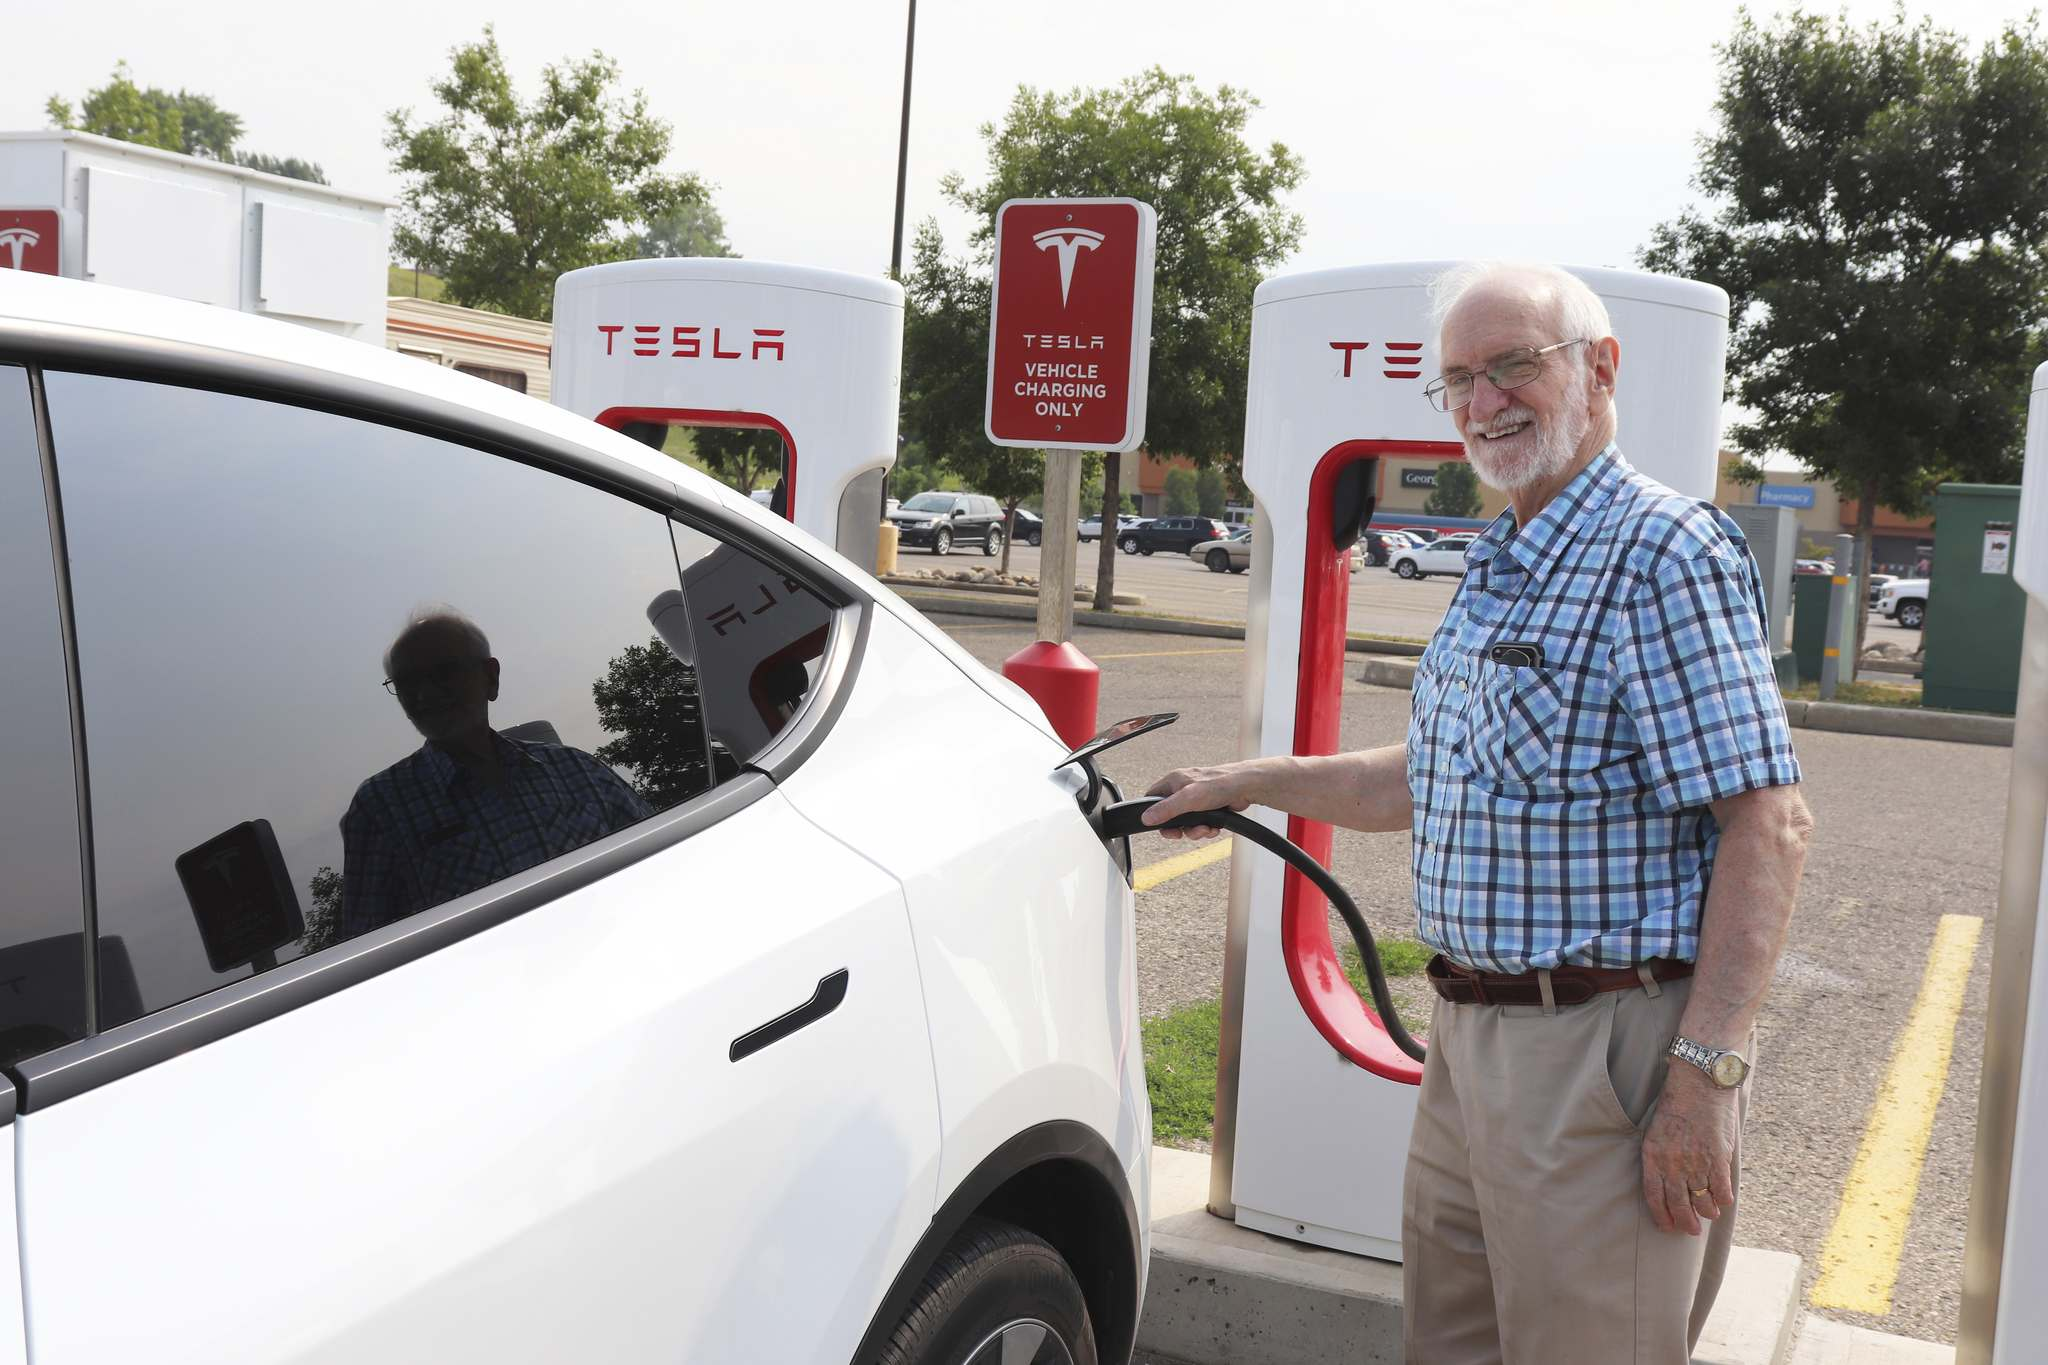 Norman powers up his 2020 Tesla Model Y at Brandon's Tesla Supercharger station at the Corral Centre on Wednesday. (Kyle Darbyson/The Brandon Sun)